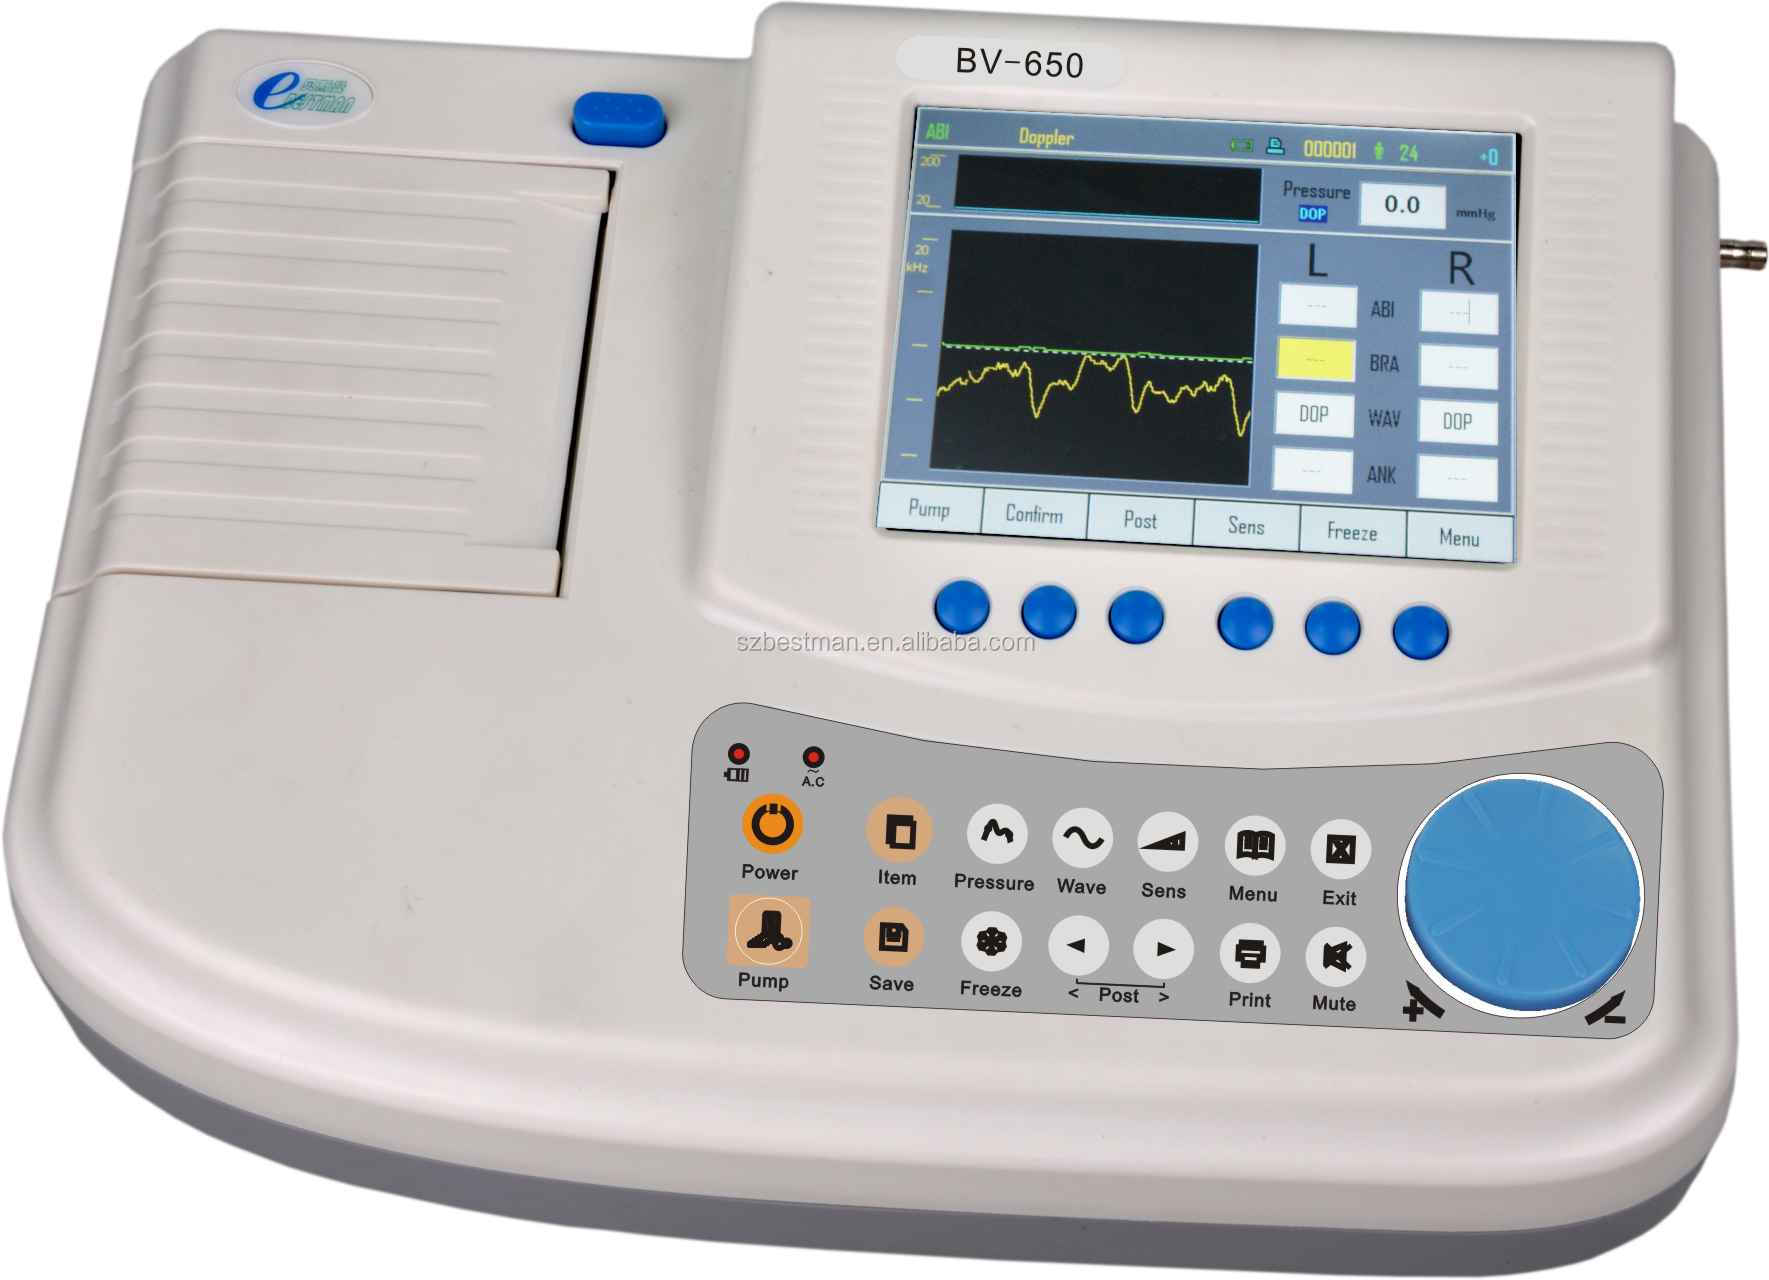 Bestman advanced vascular doppler for ABI TBI and segment detect BV-650 CE mark